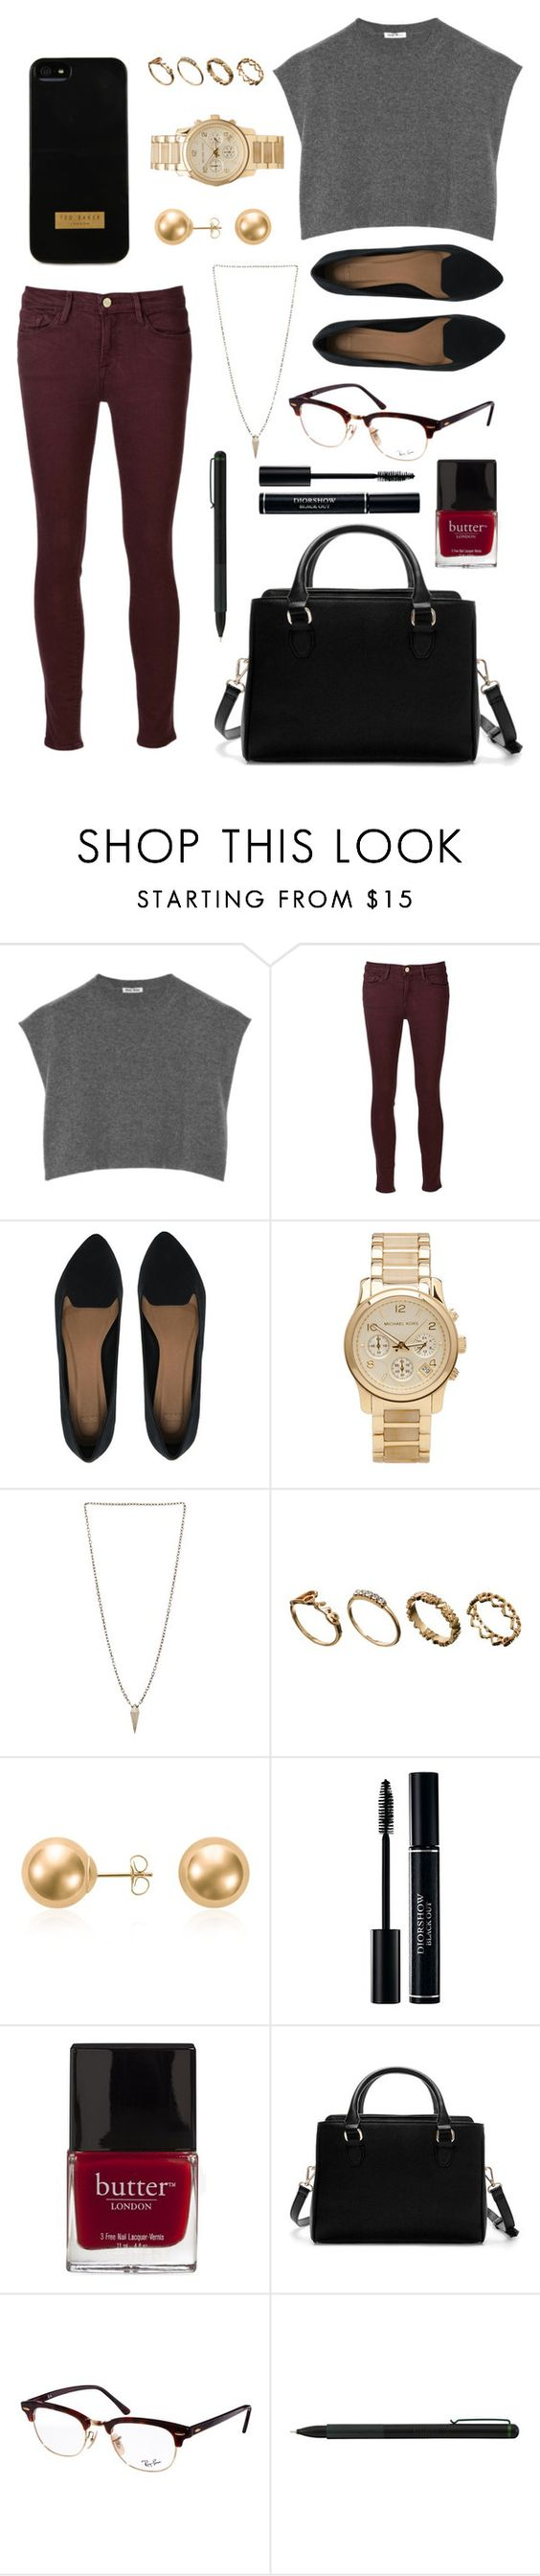 """4 o'clock Out & About"" by whatsuplemondrop ❤ liked on Polyvore featuring Miu Miu, Frame Denim, ASOS, Michael Kors, Luv Aj, Blue Nile, Butter London, Zara, Ray-Ban and IDEA International"